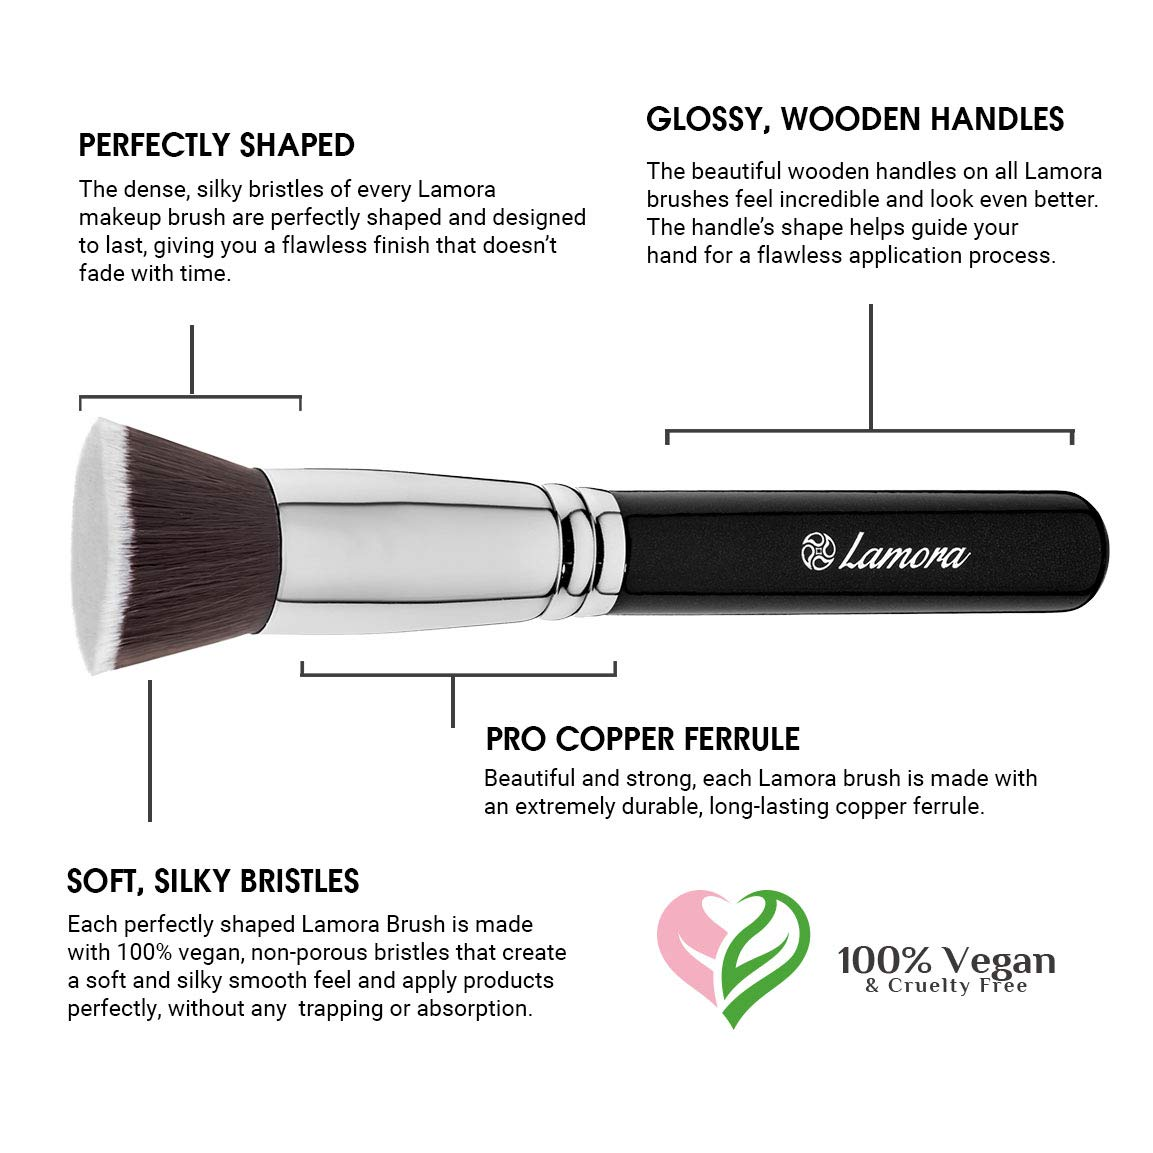 Make Up Brush Foundation Kabuki Flat Top - Perfect For Blending Liquid, Cream or Flawless Powder Cosmetics - Buffing, Stippling, Concealer - Premium Quality ...